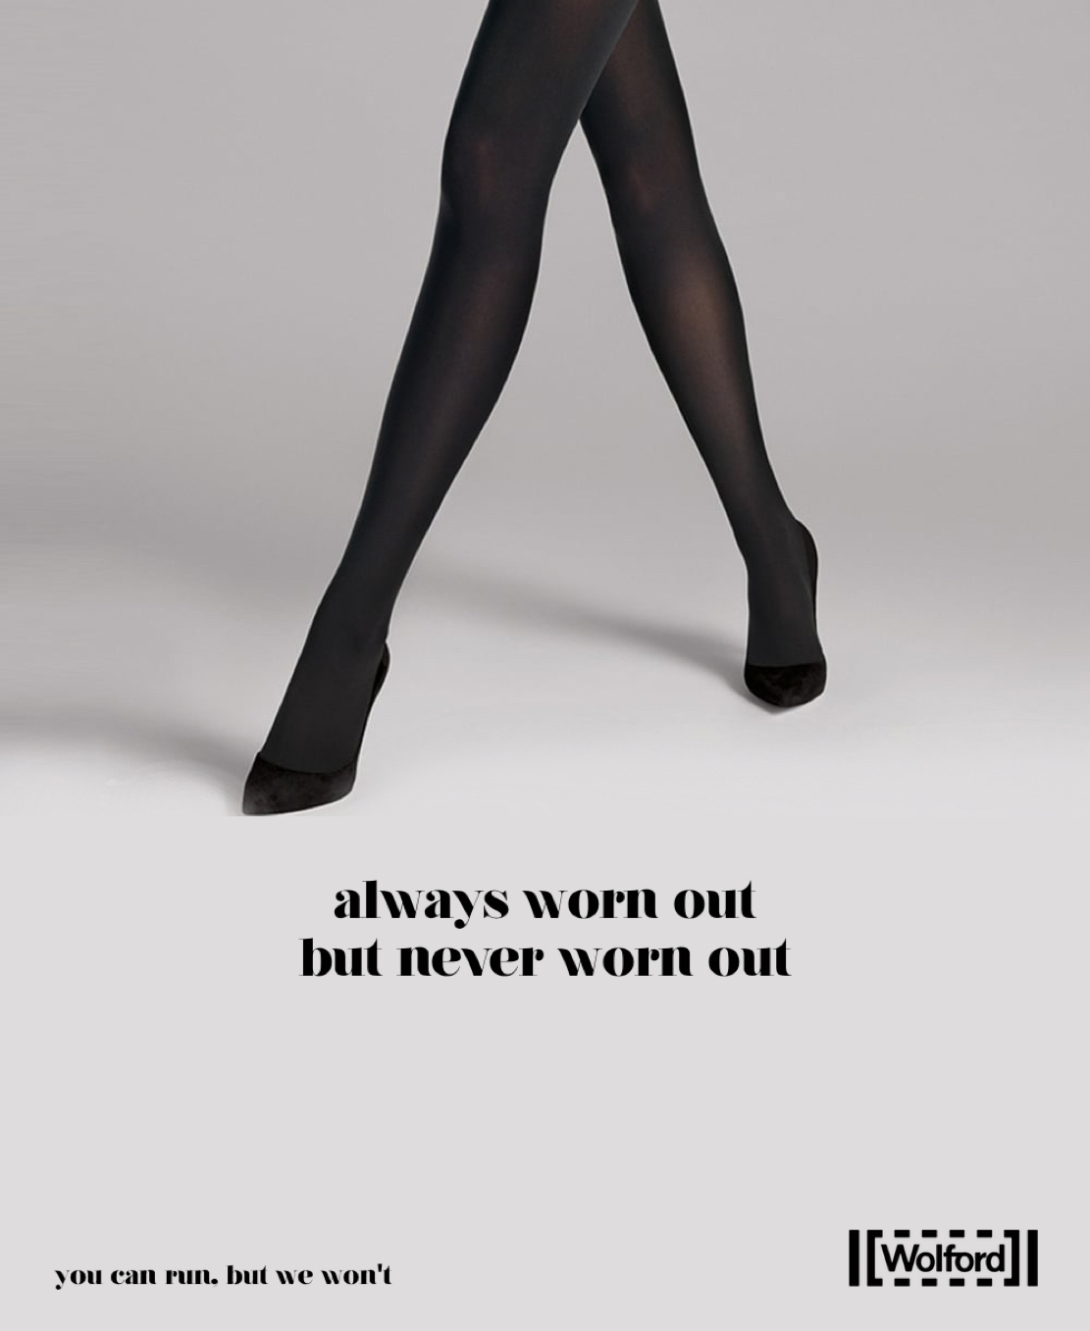 quick advertising idea for a tights brand - they won't run